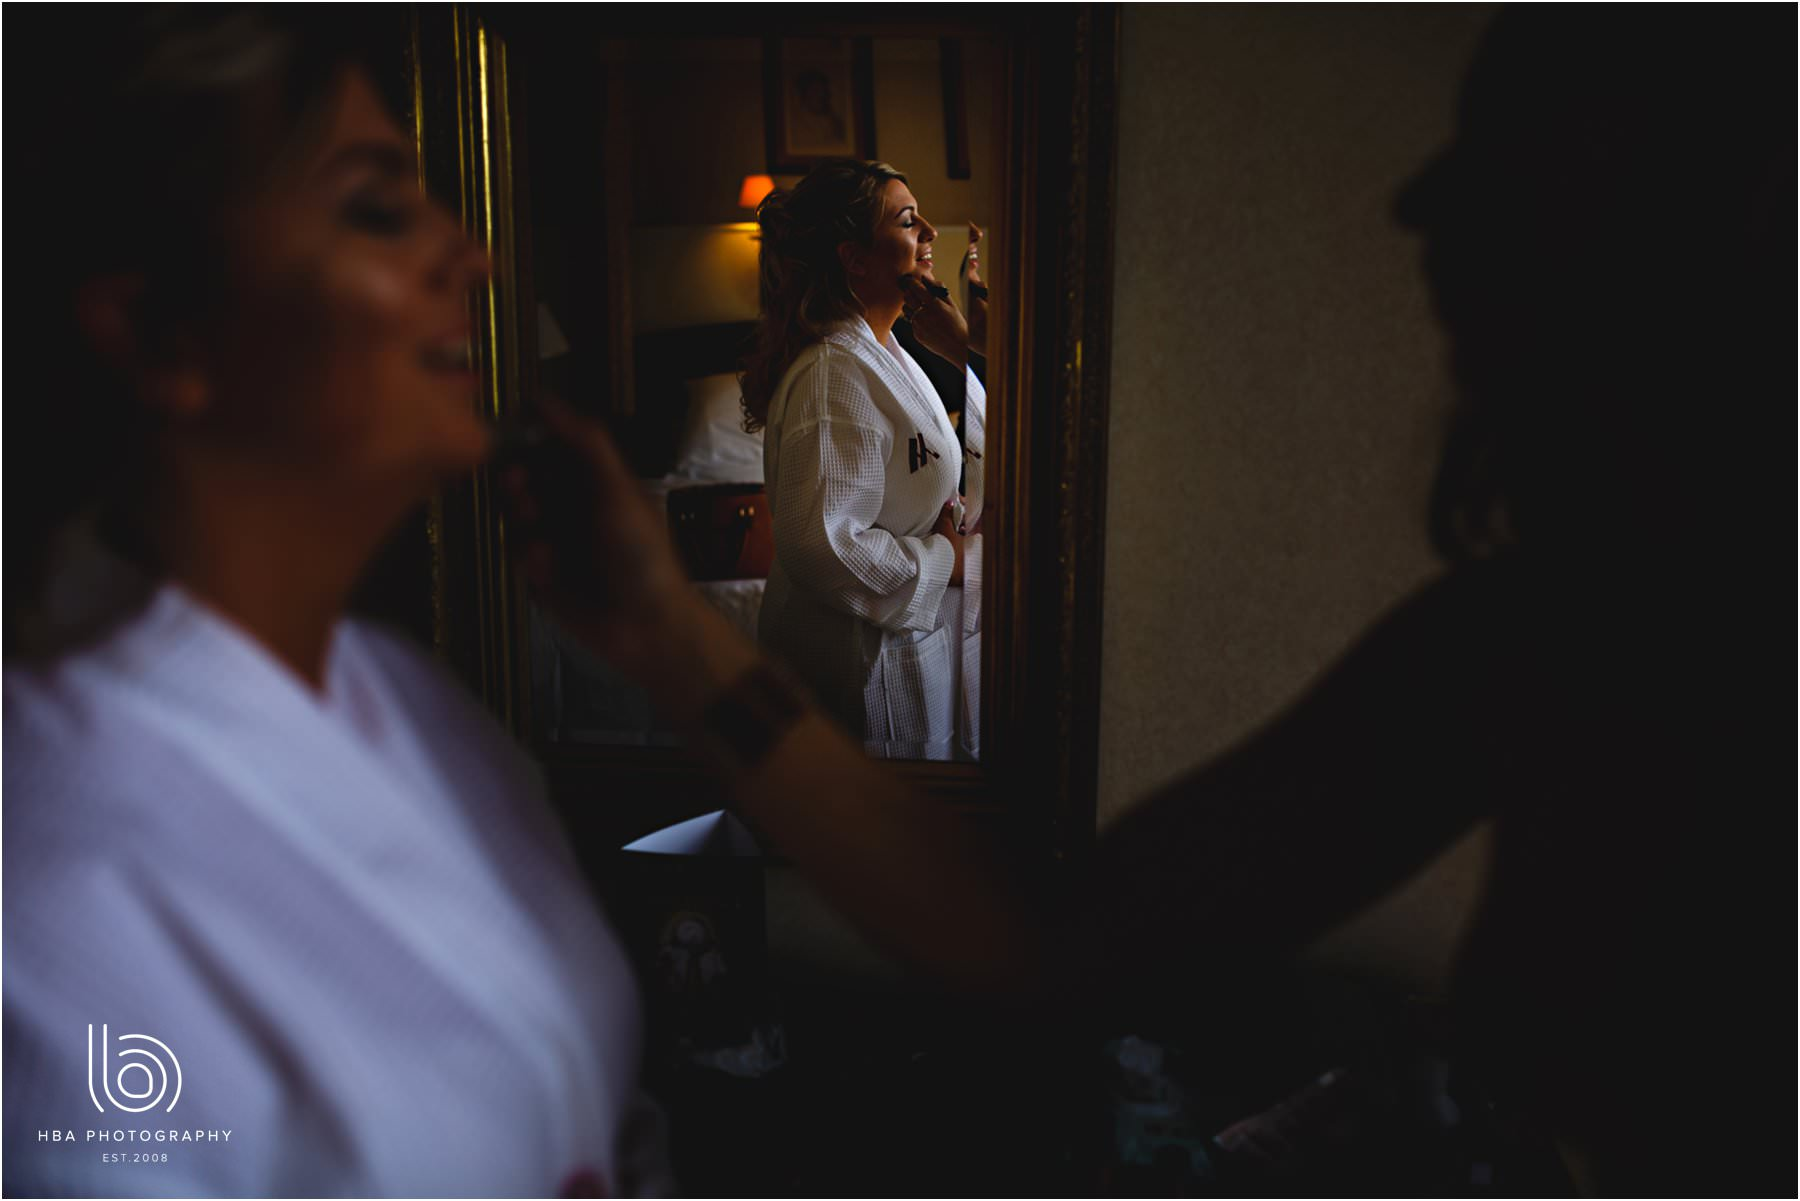 The bride getting ready at Breadsall Priory